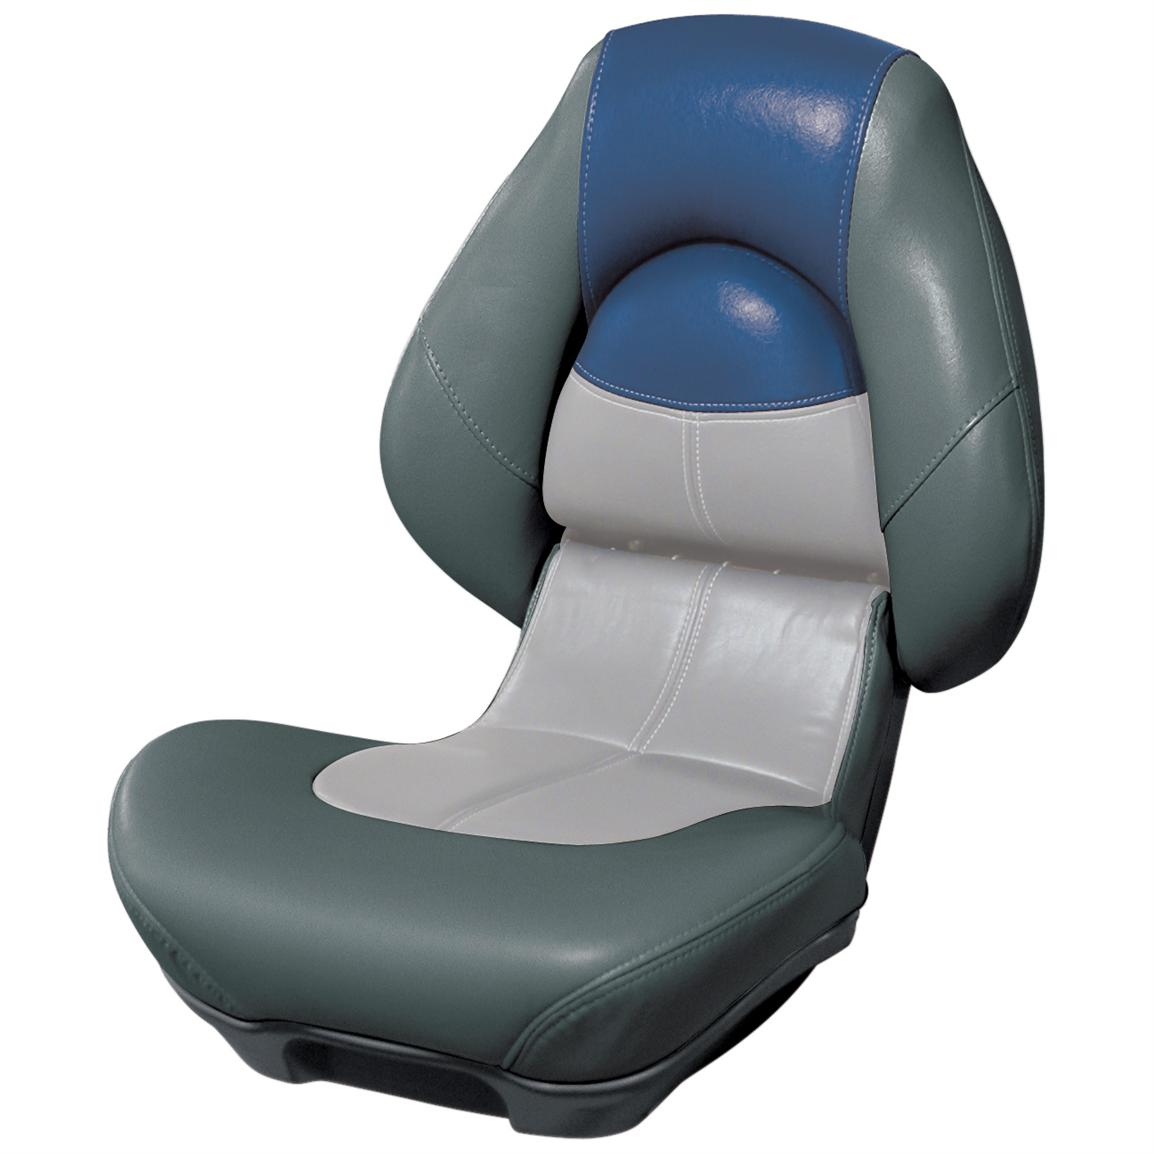 Wise® Blast-Off™ Series Centric 2 Folding Boat Seat, Charcoal / Green / Blue